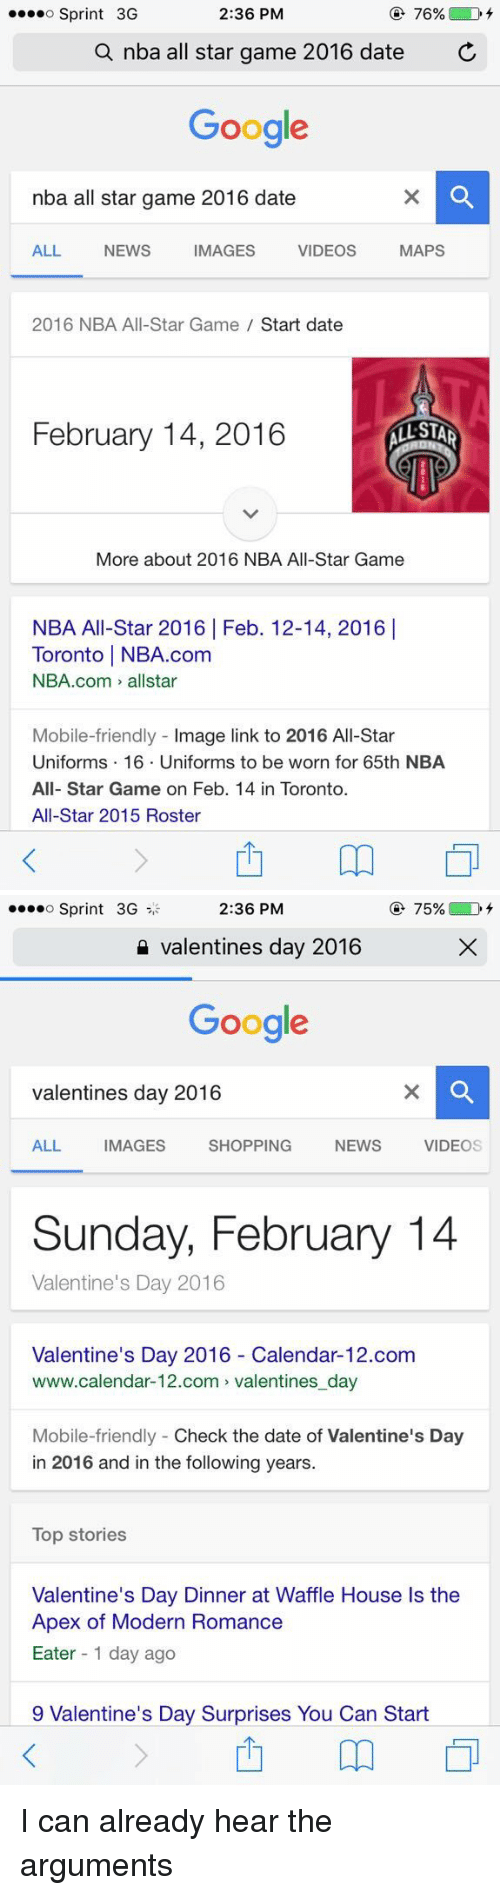 nba all star 2016: 2:36 PM  76%  D  o Sprint 3G  a nba all star game 2016 date  C  Google  nba all star game 2016 date  MAPS  ALL NEWS IMAGES VIDEOS  2016 NBA All-Star Game  Start date  February 14, 2016  STAR  More about 2016 NBA All-Star Game  NBA All-Star 2016 Feb. 12-14, 2016 I  Toronto l NBA.com  NBA.com allstar  Mobile-friendly  mage link to 2016 All-Star  Uniforms 16. Uniforms to be worn for 65th NBA  All-Star Game on Feb. 14 in Toronto.  All-Star 2015 Roster   75%  D  o Sprint 3G  2:36 PM  Valentines day 2016  Google  valentines day 2016  ALL IMAGES SHOPPING NEWs  VIDEO  Sunday, February 14  Valentine's Day 2016  Valentine's Day 2016 Calendar-12.com  www.calendar-12.com valentines day  Mobile-friendly Check the date of Valentine's Day  in 2016 and in the following years.  Top stories  Valentine's Day Dinner at Waffle House ls the  Apex of Modern Romance  Eater 1 day ago  9 Valentine's Day Surprises You Can Start I can already hear the arguments